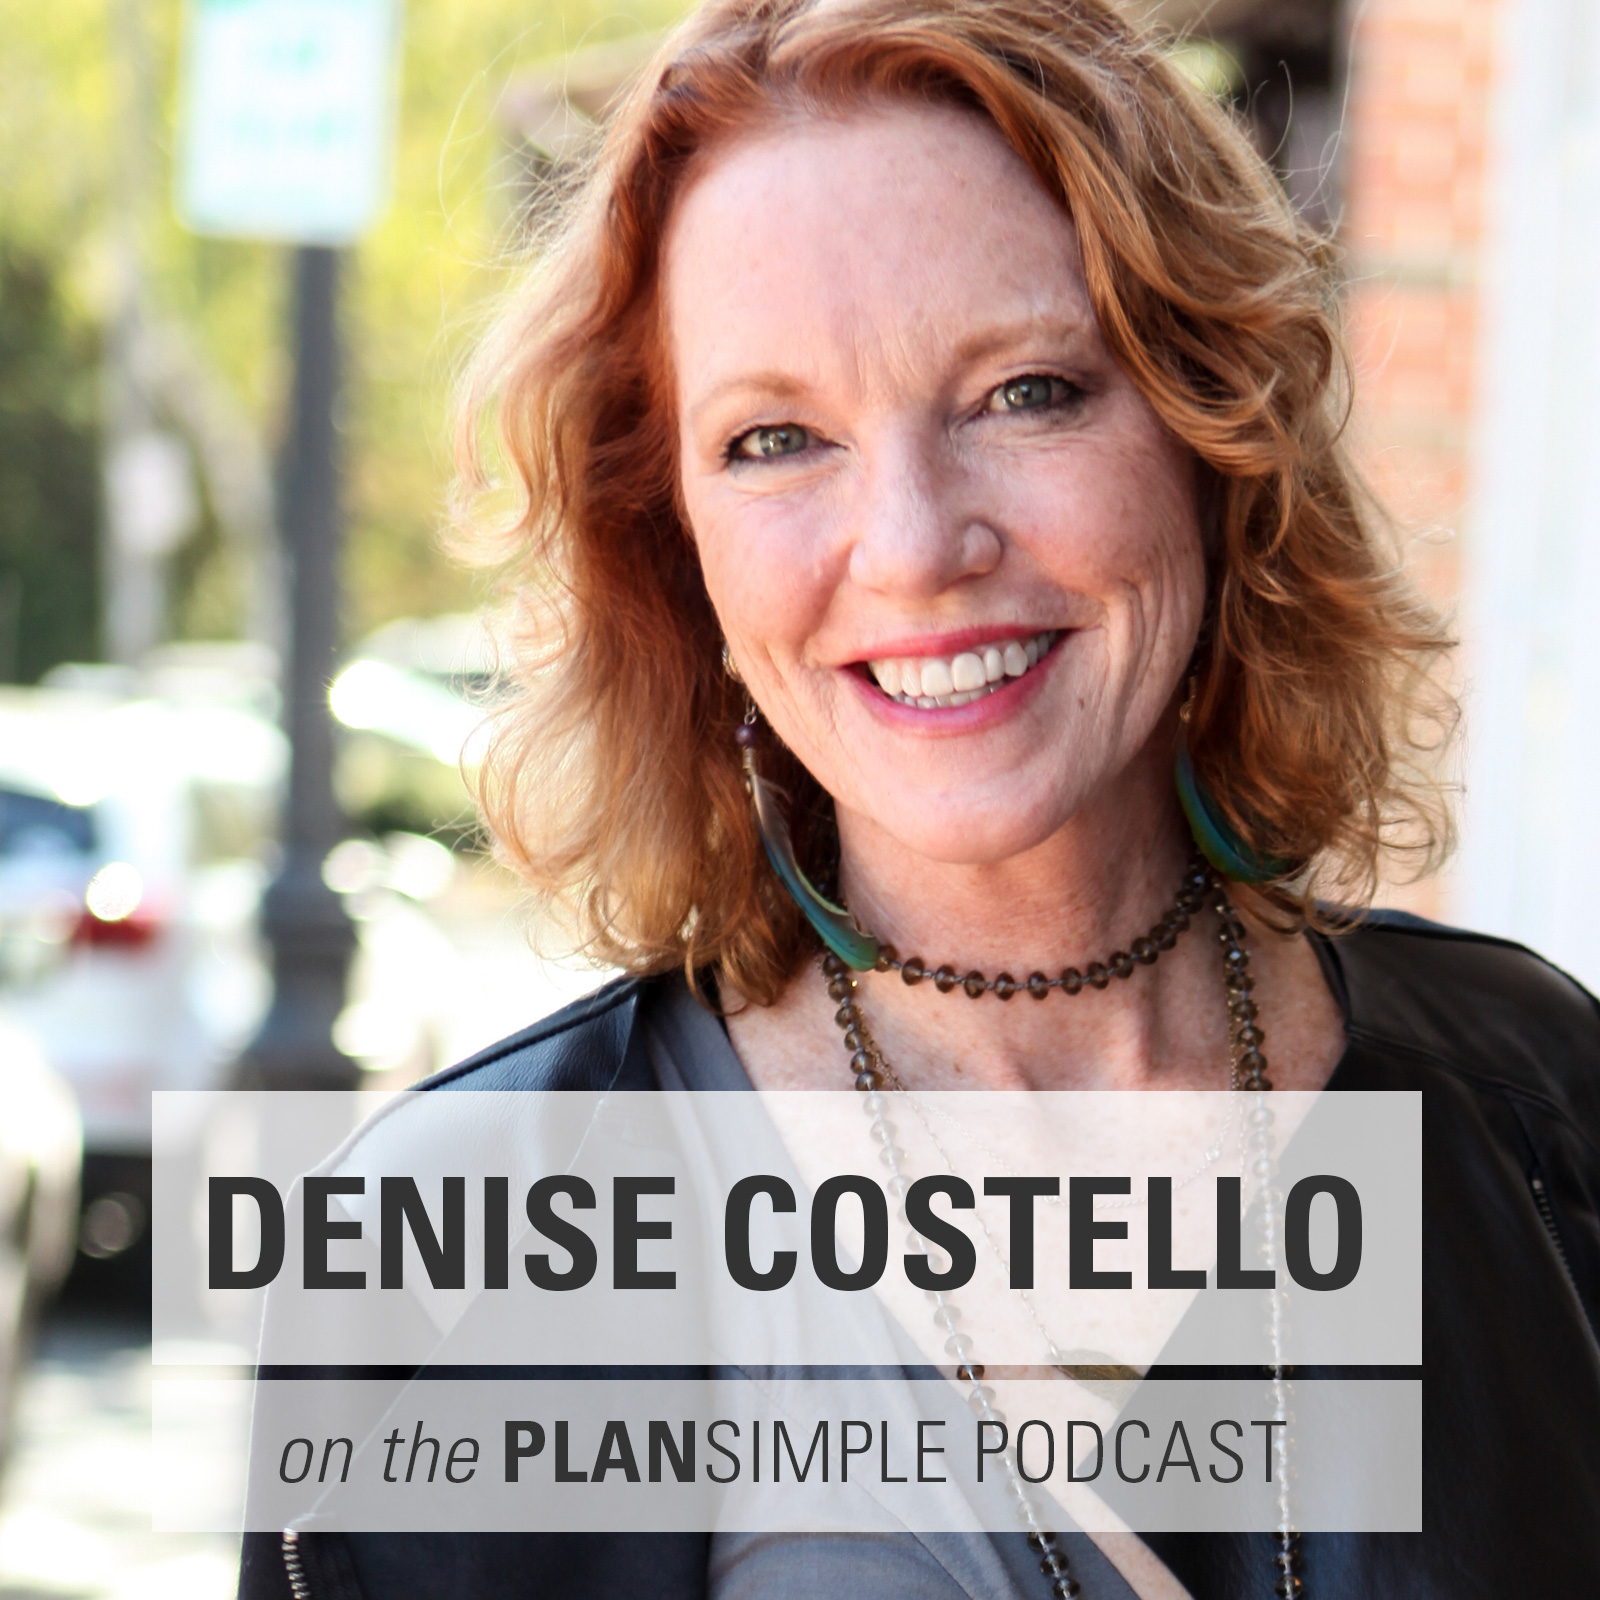 PODCAST DENISE